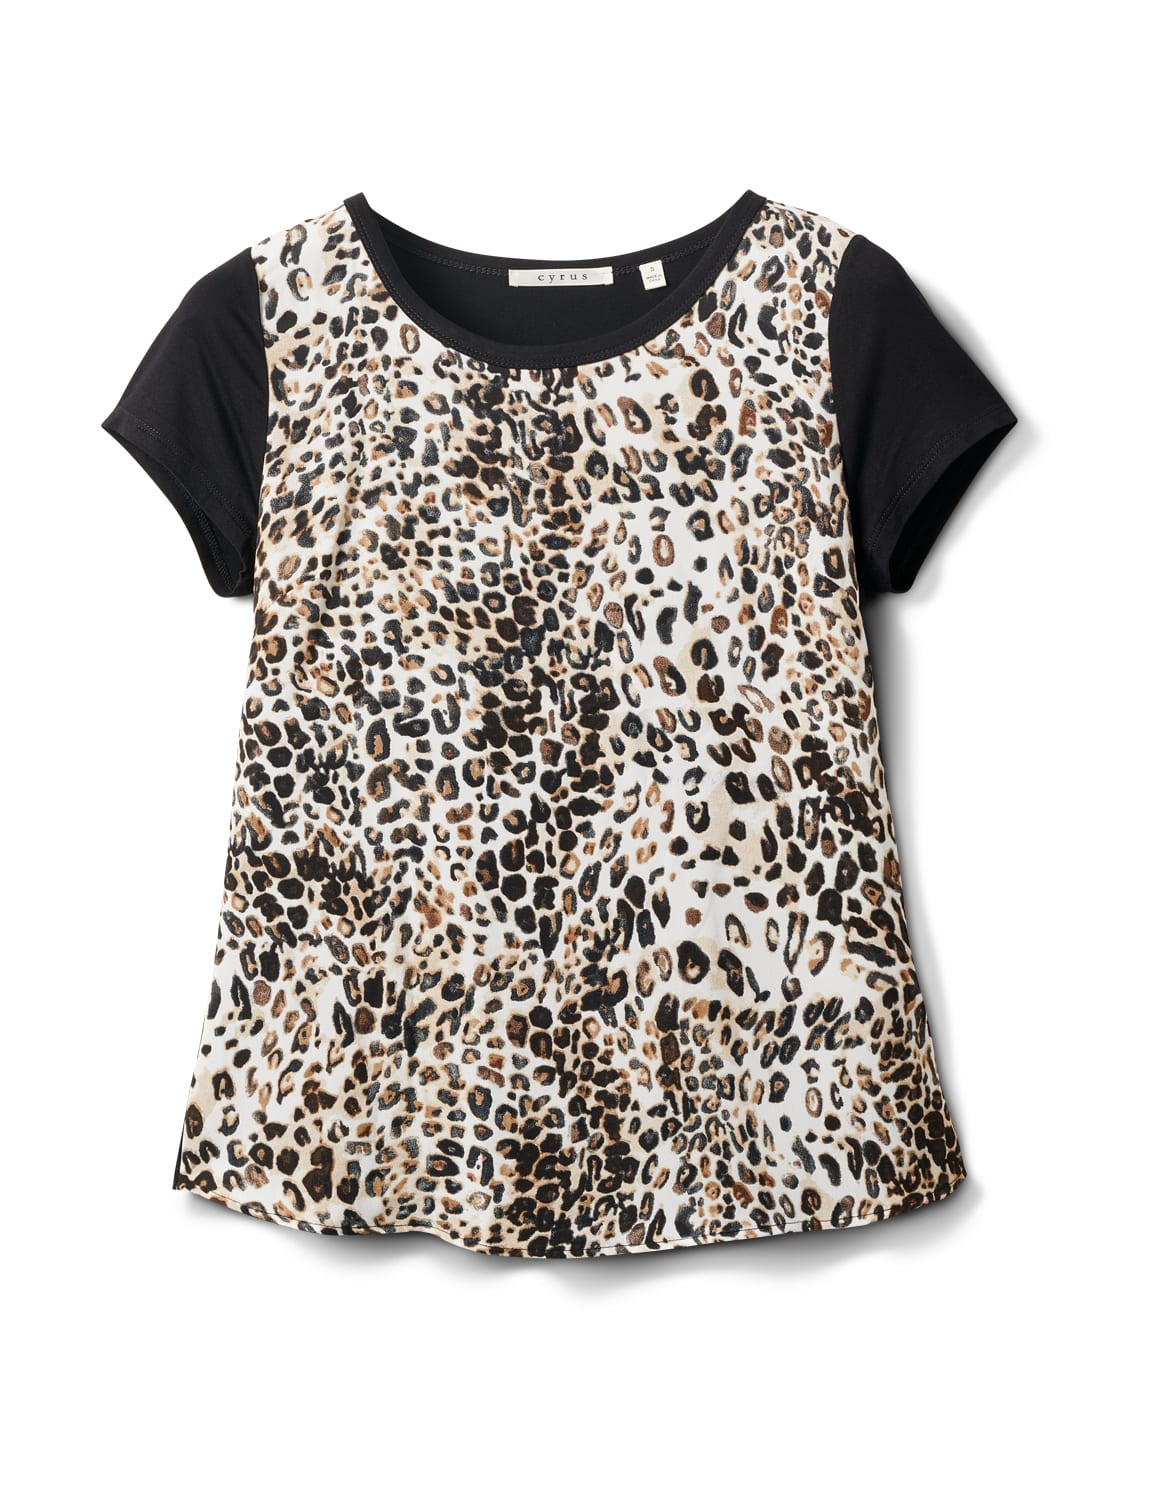 Leopard Mix Media Knit Top - Black - Front